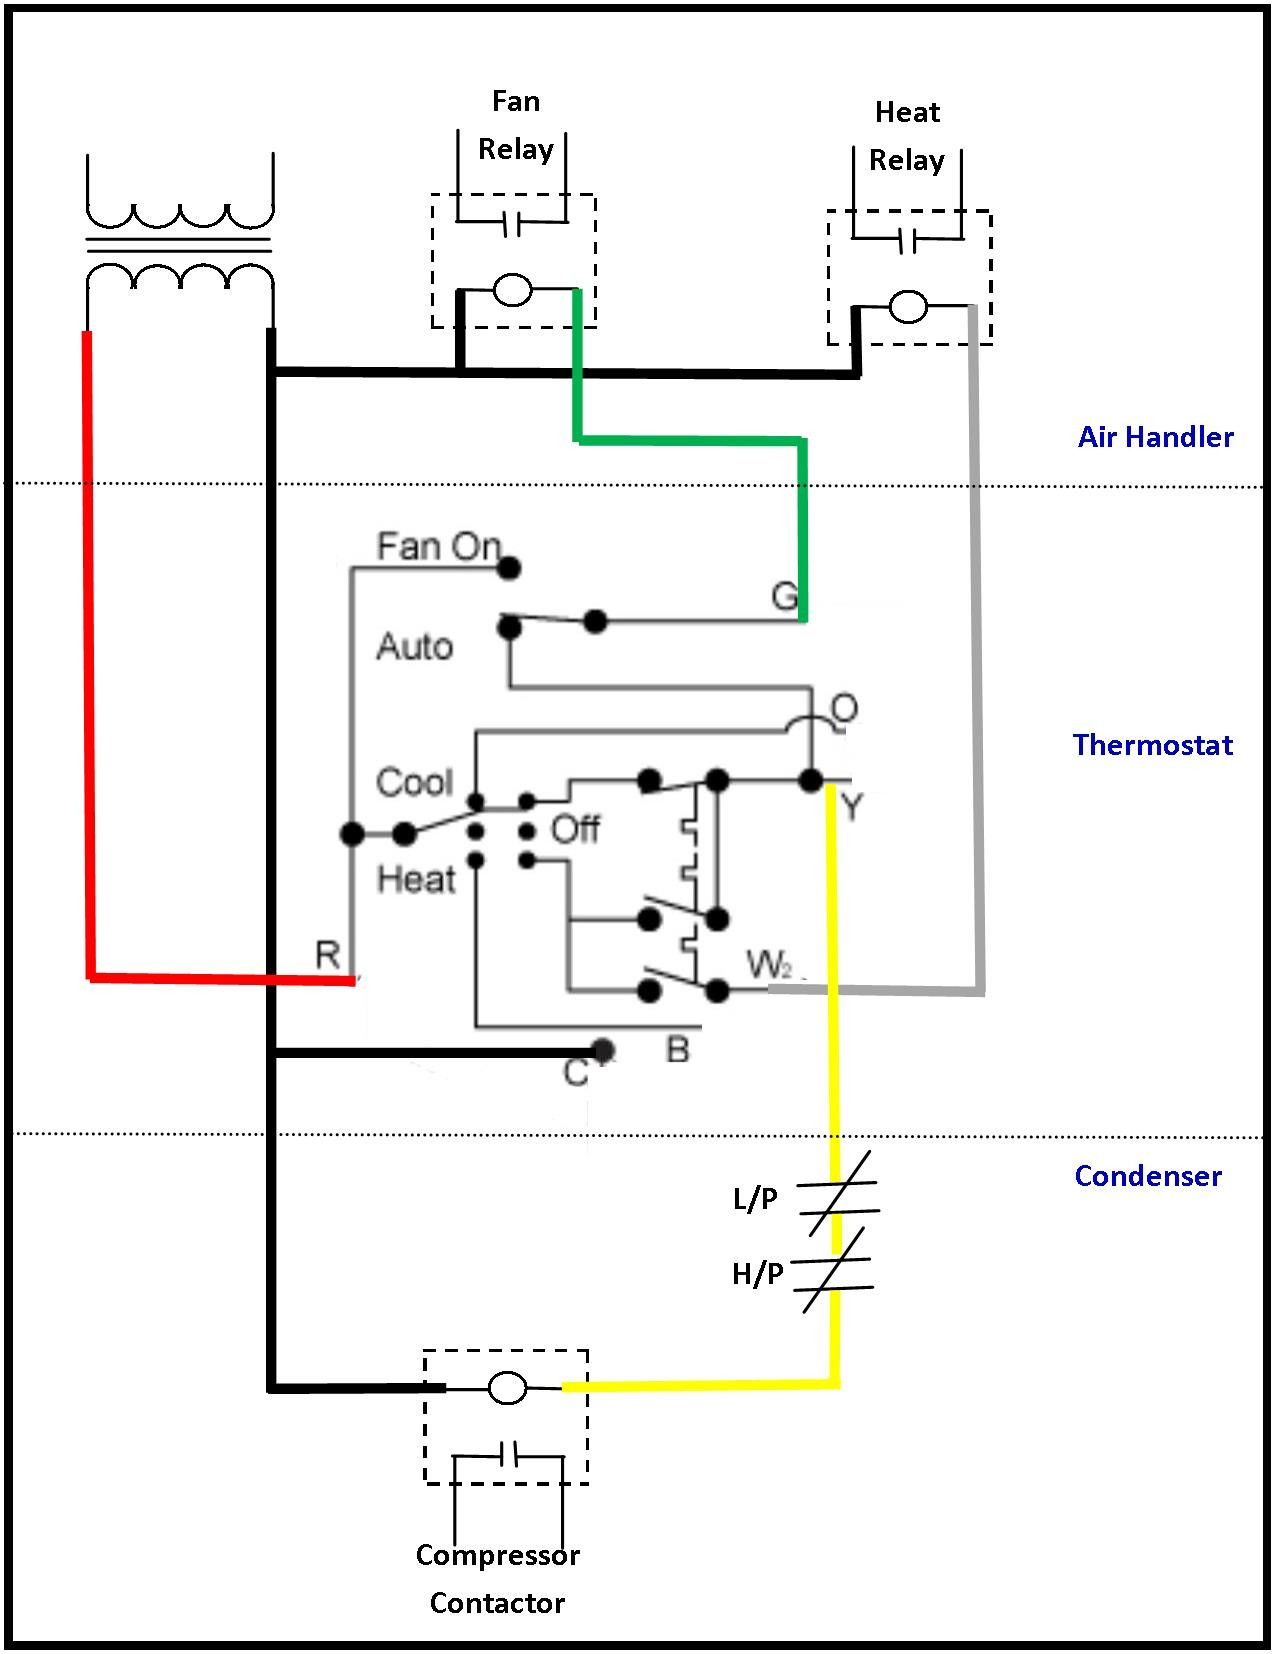 Room Thermostat Wiring Diagrams For HVAC Systems With Home Ac Beauteous Diagram